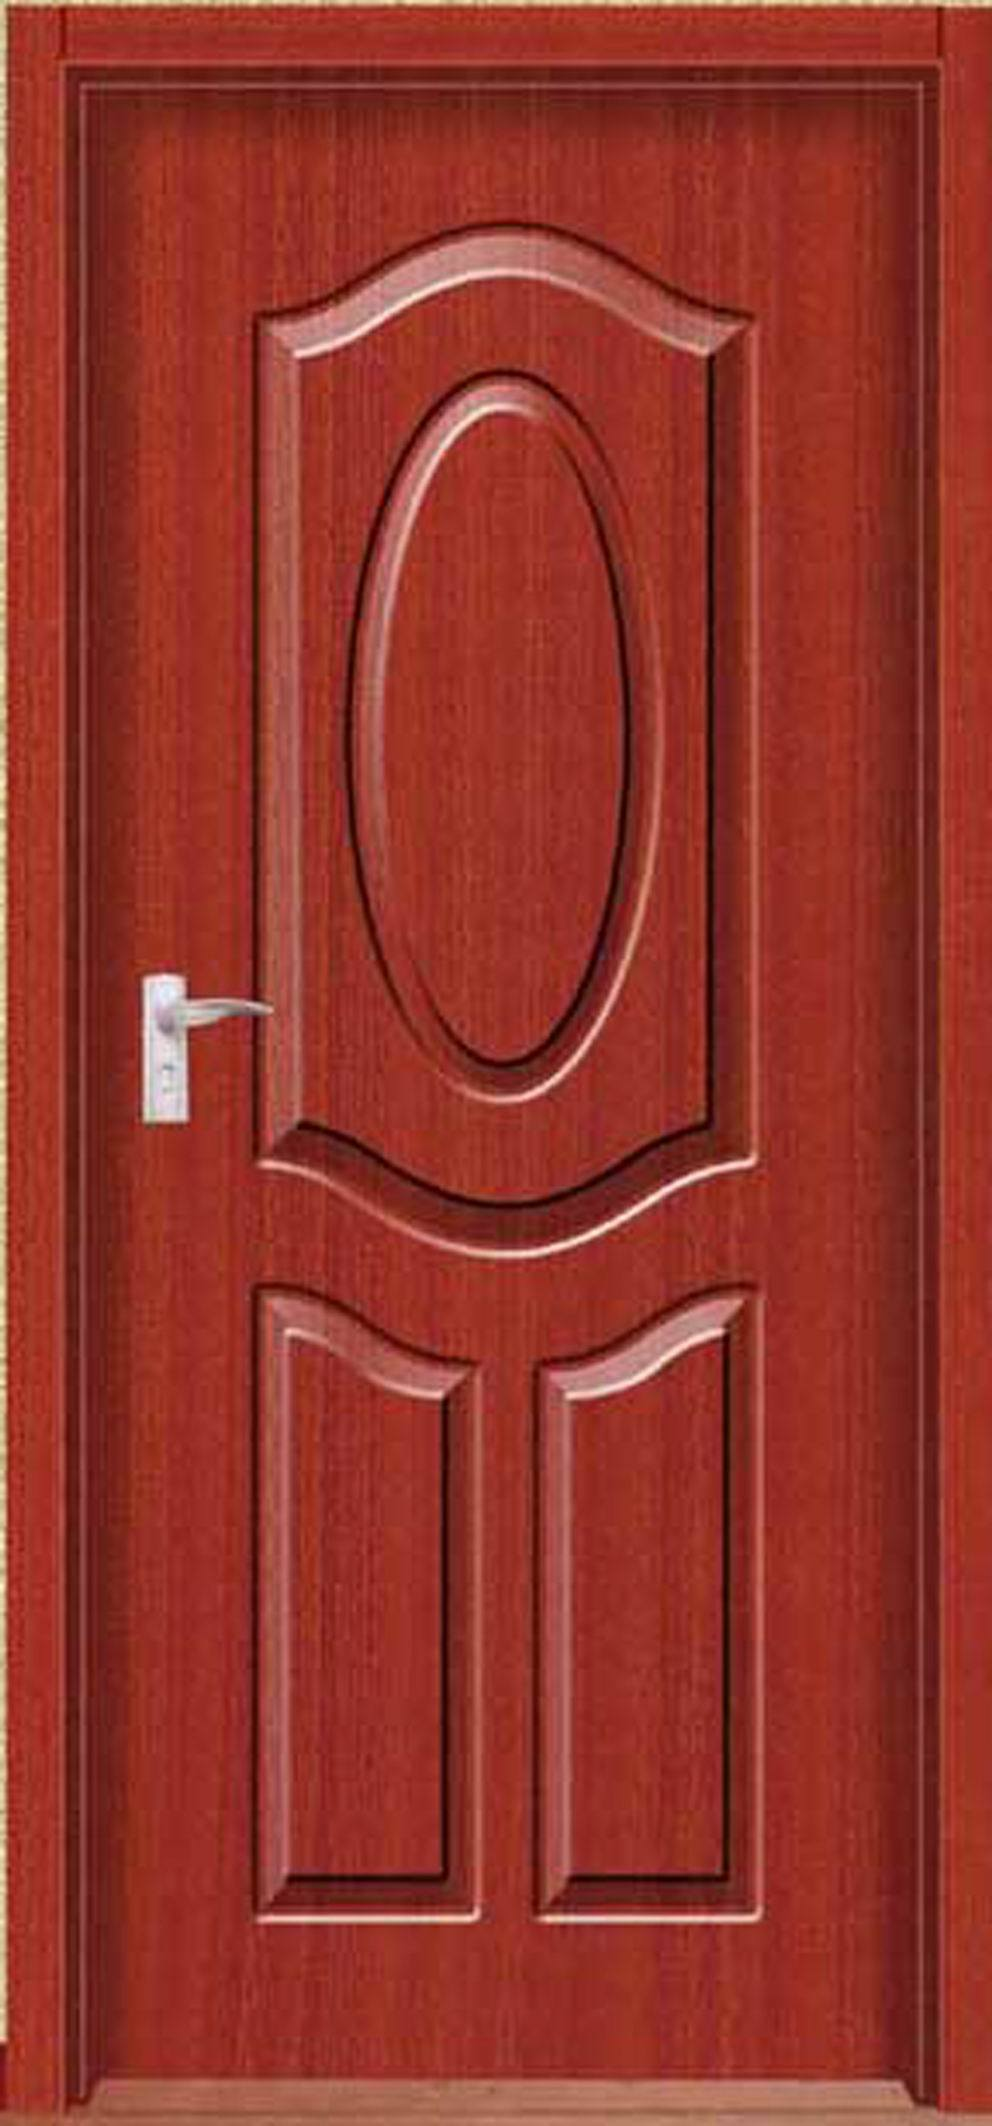 door i wonderful handles decorated entry lowes doors exterior french front depot interior sliding elegant locks burnished at sight artistic with home wood for wooden dark design